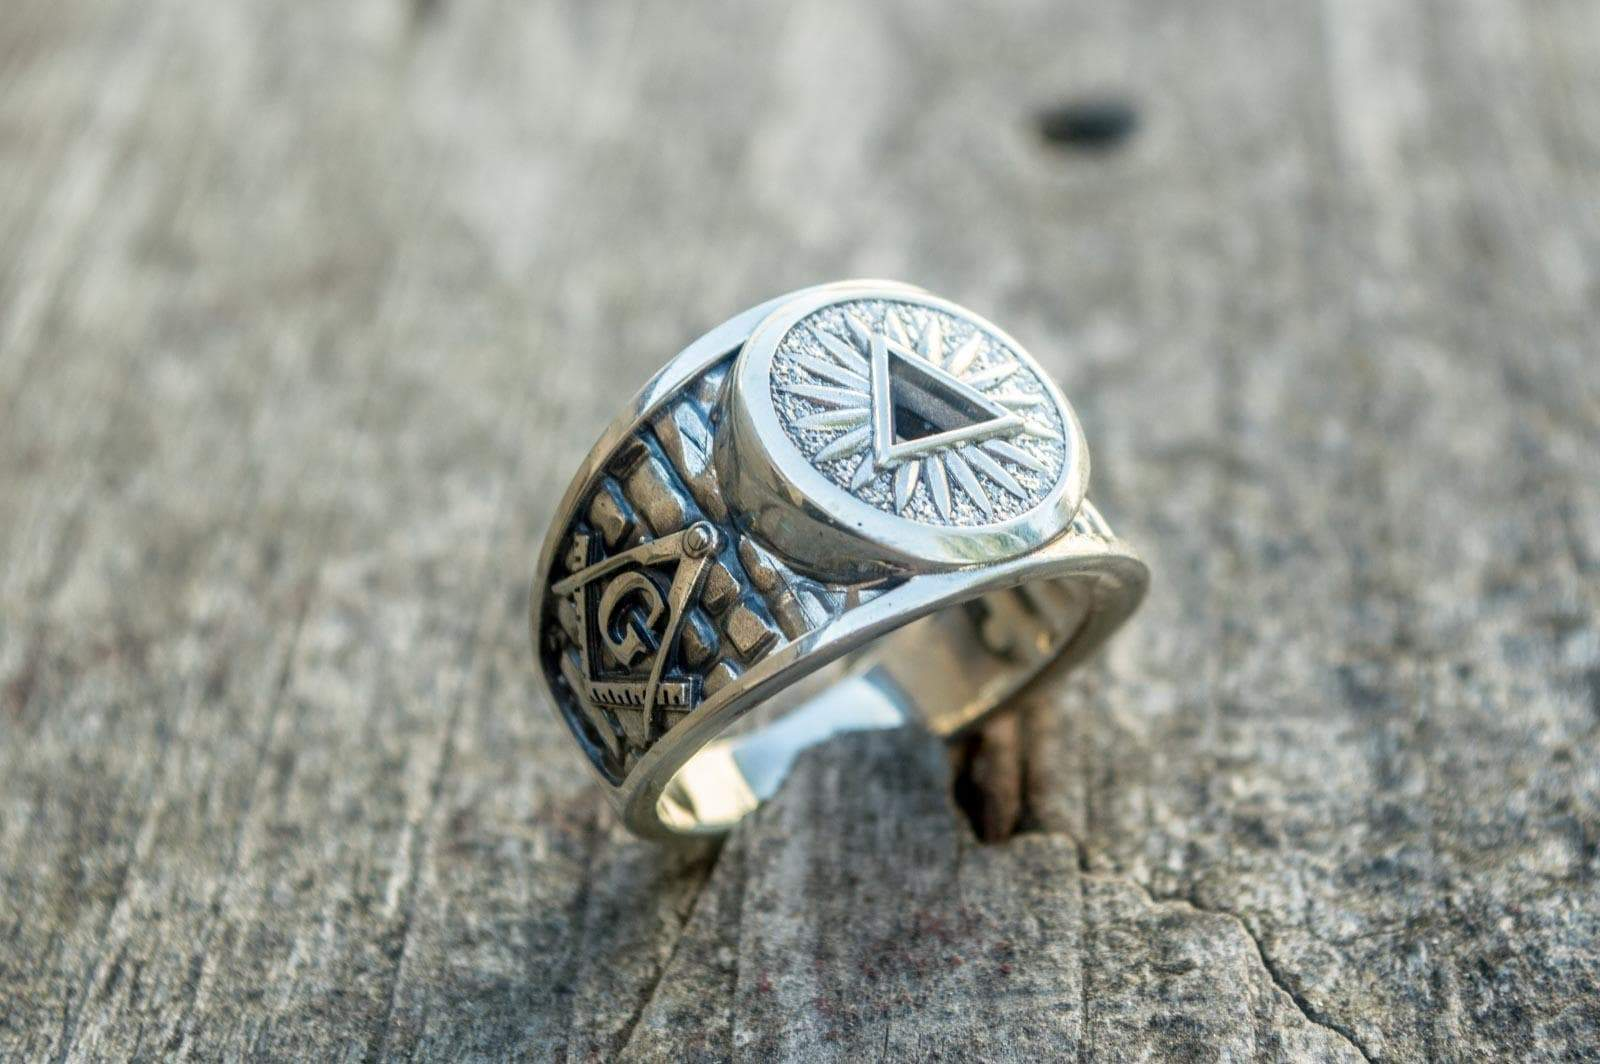 Rings Masonic Hallow Eye of Providence Sterling Silver Handcrafted Ring Ancient Treasures Ancientreasures Viking Odin Thor Mjolnir Celtic Ancient Egypt Norse Norse Mythology